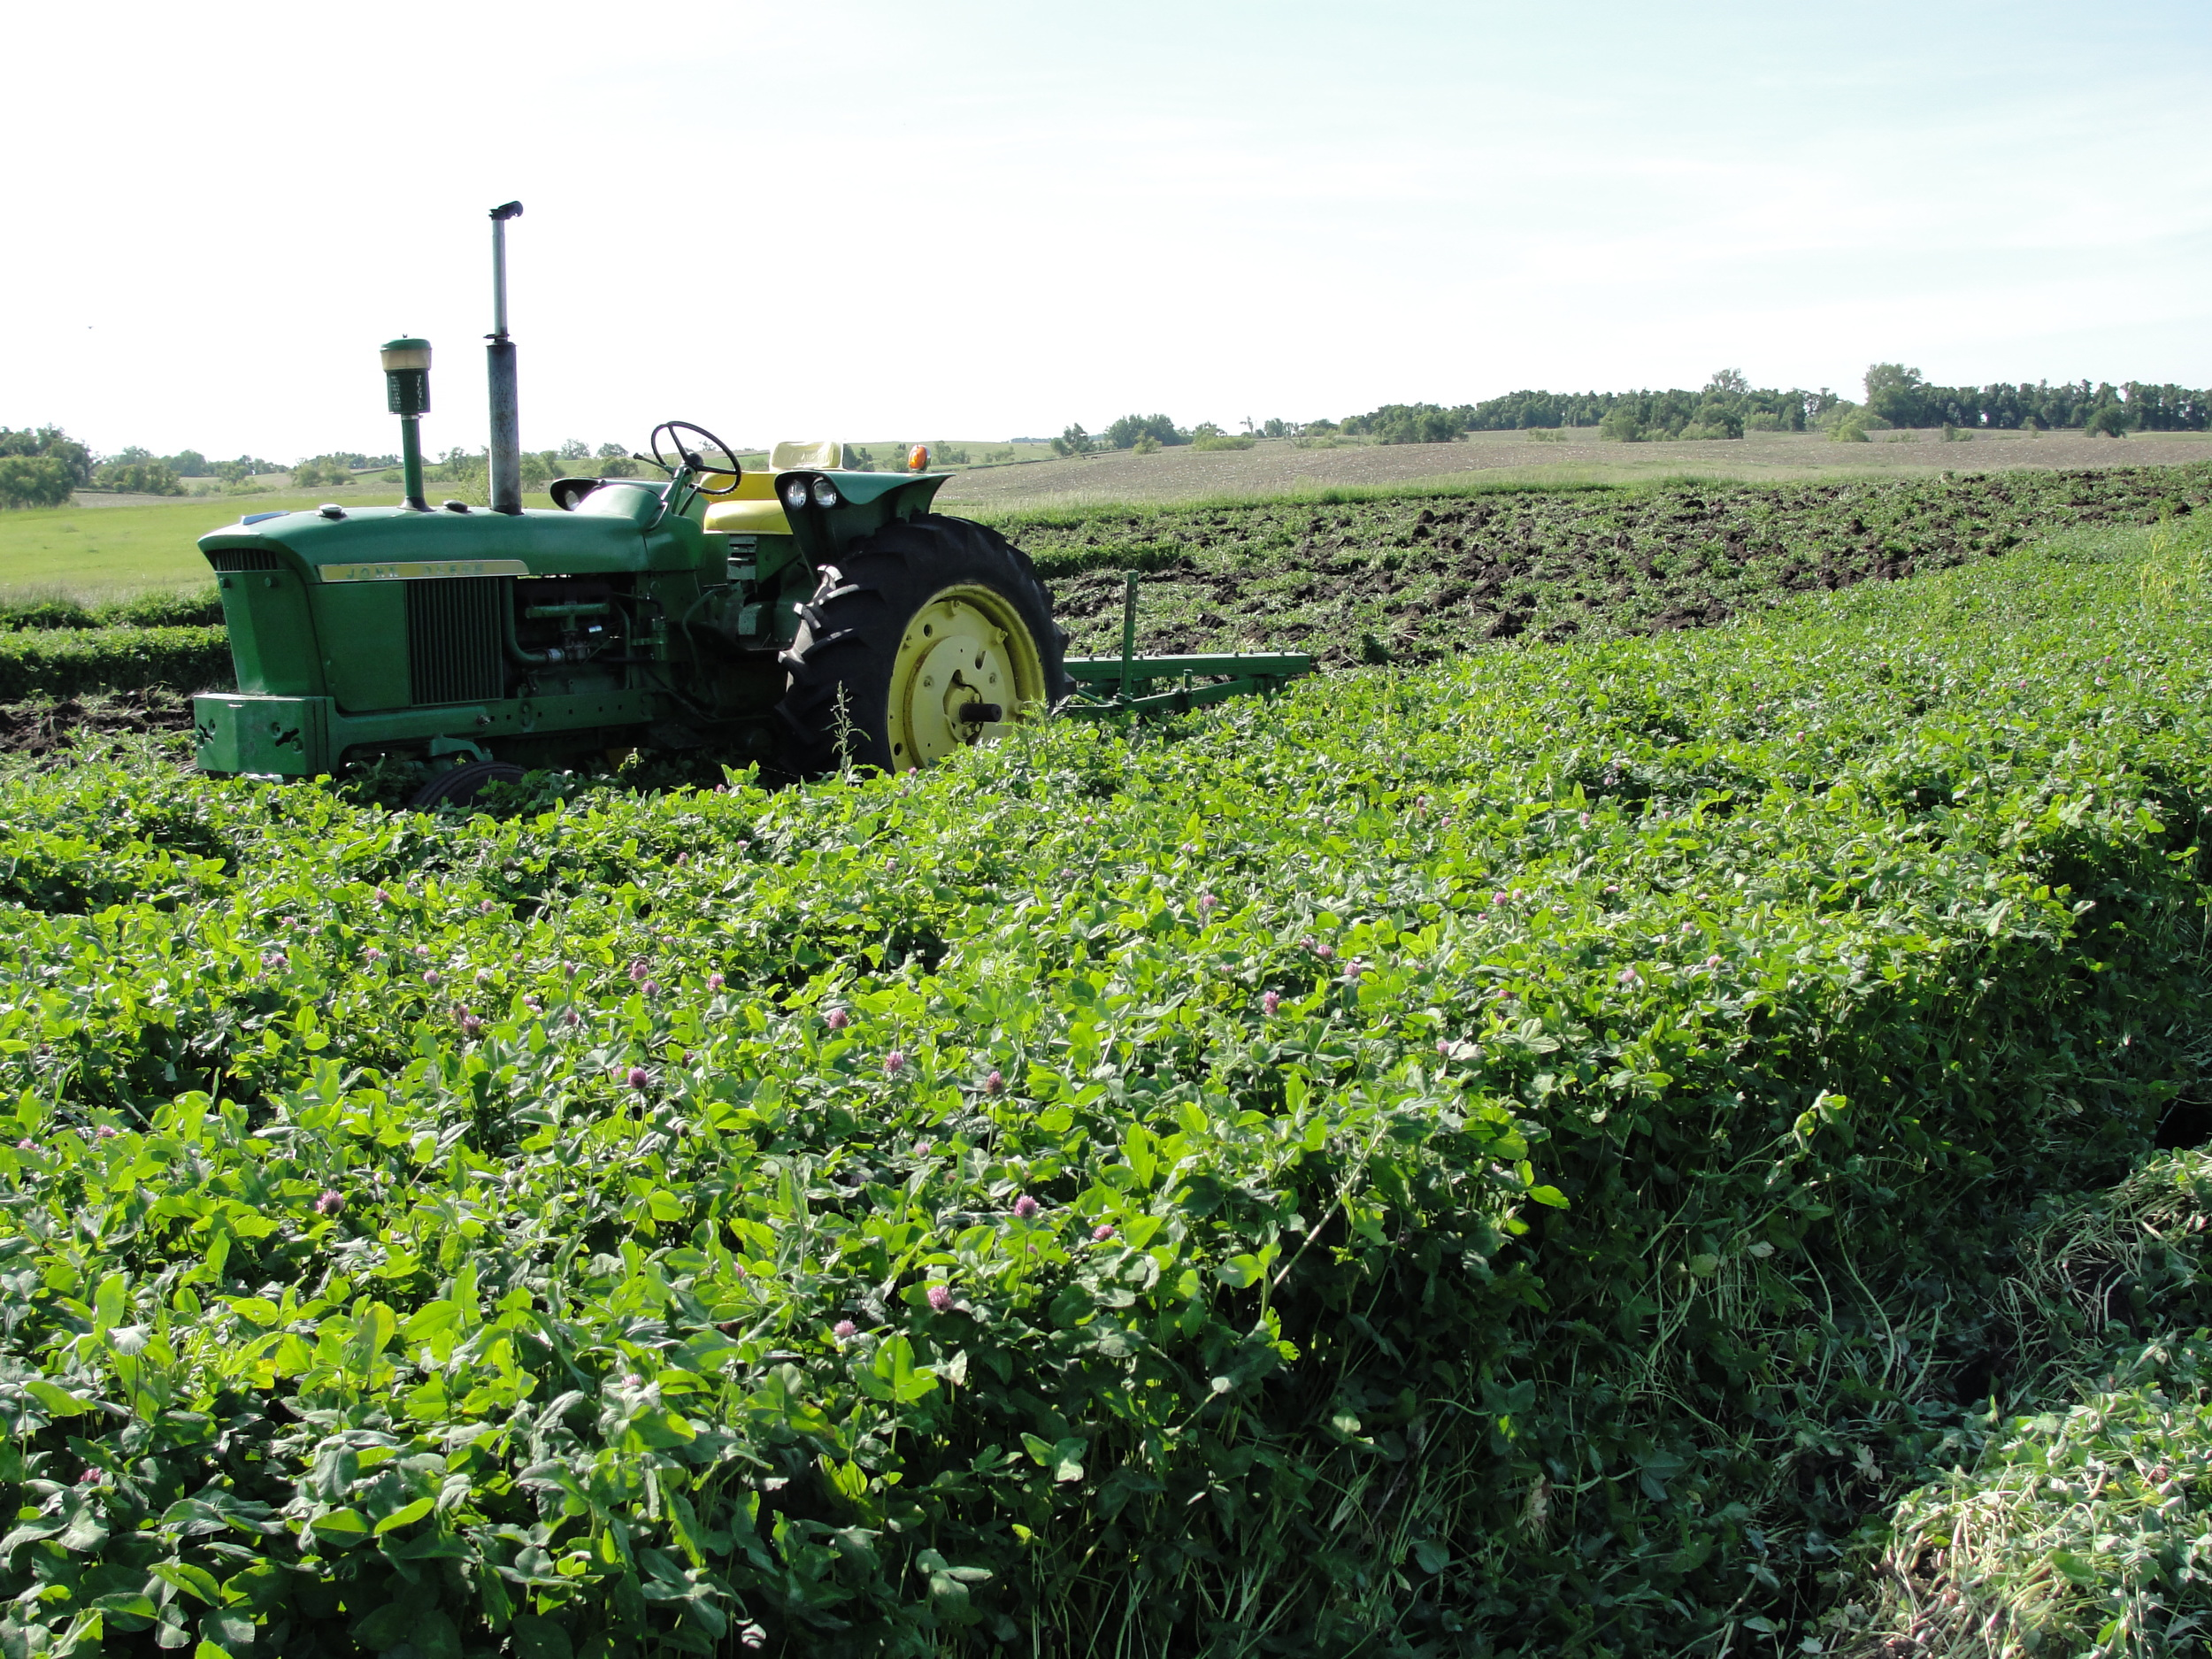 Plowing in the clover